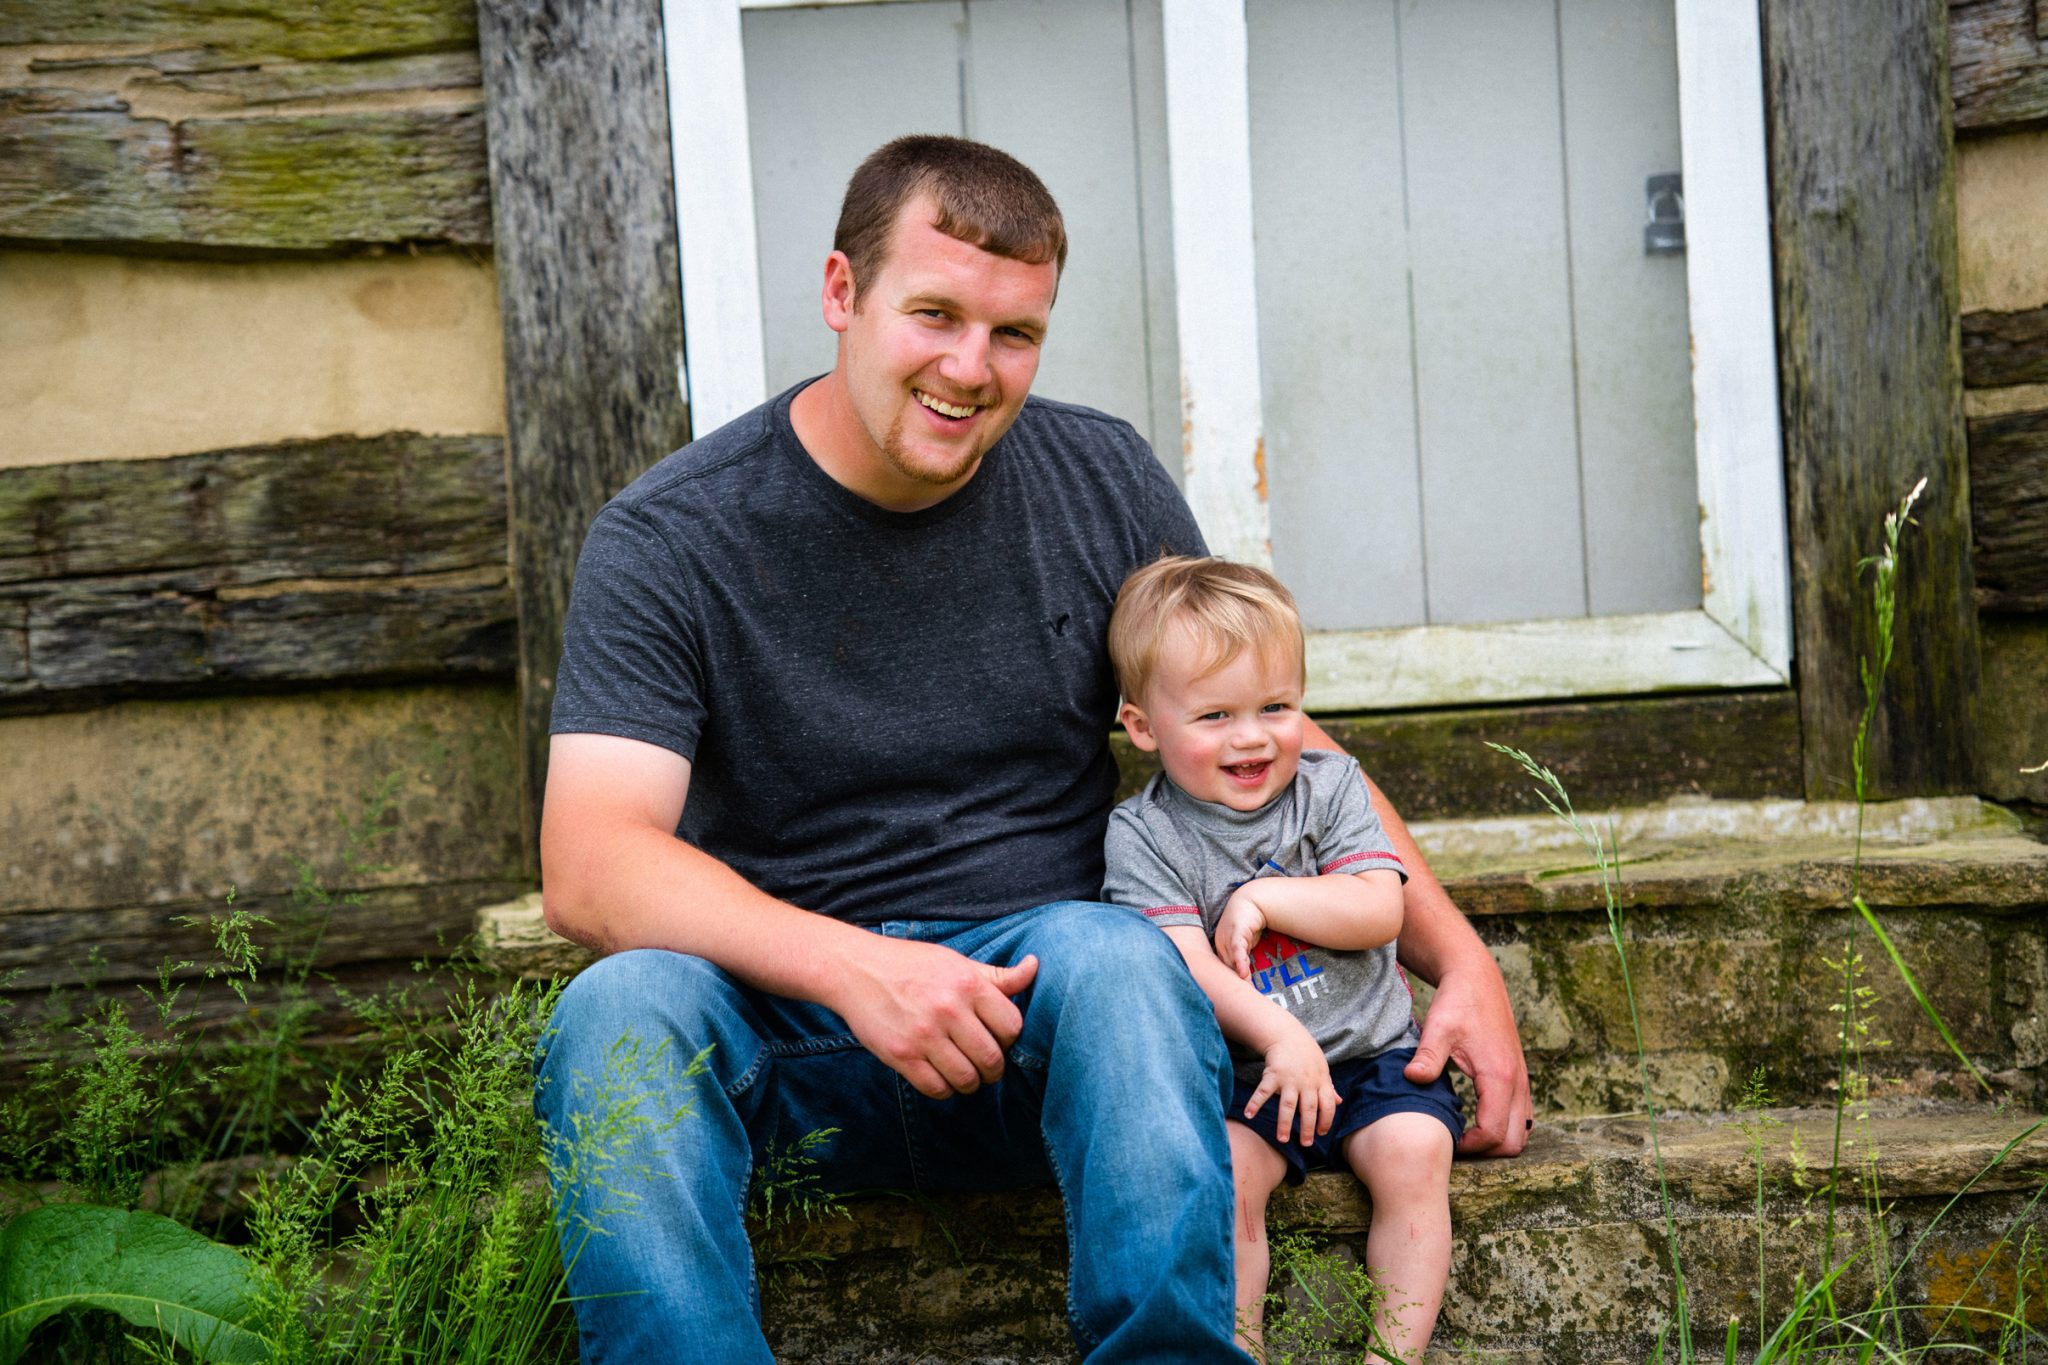 Caleb and his young song Cason sit and smile together on some steps for a photo outside.